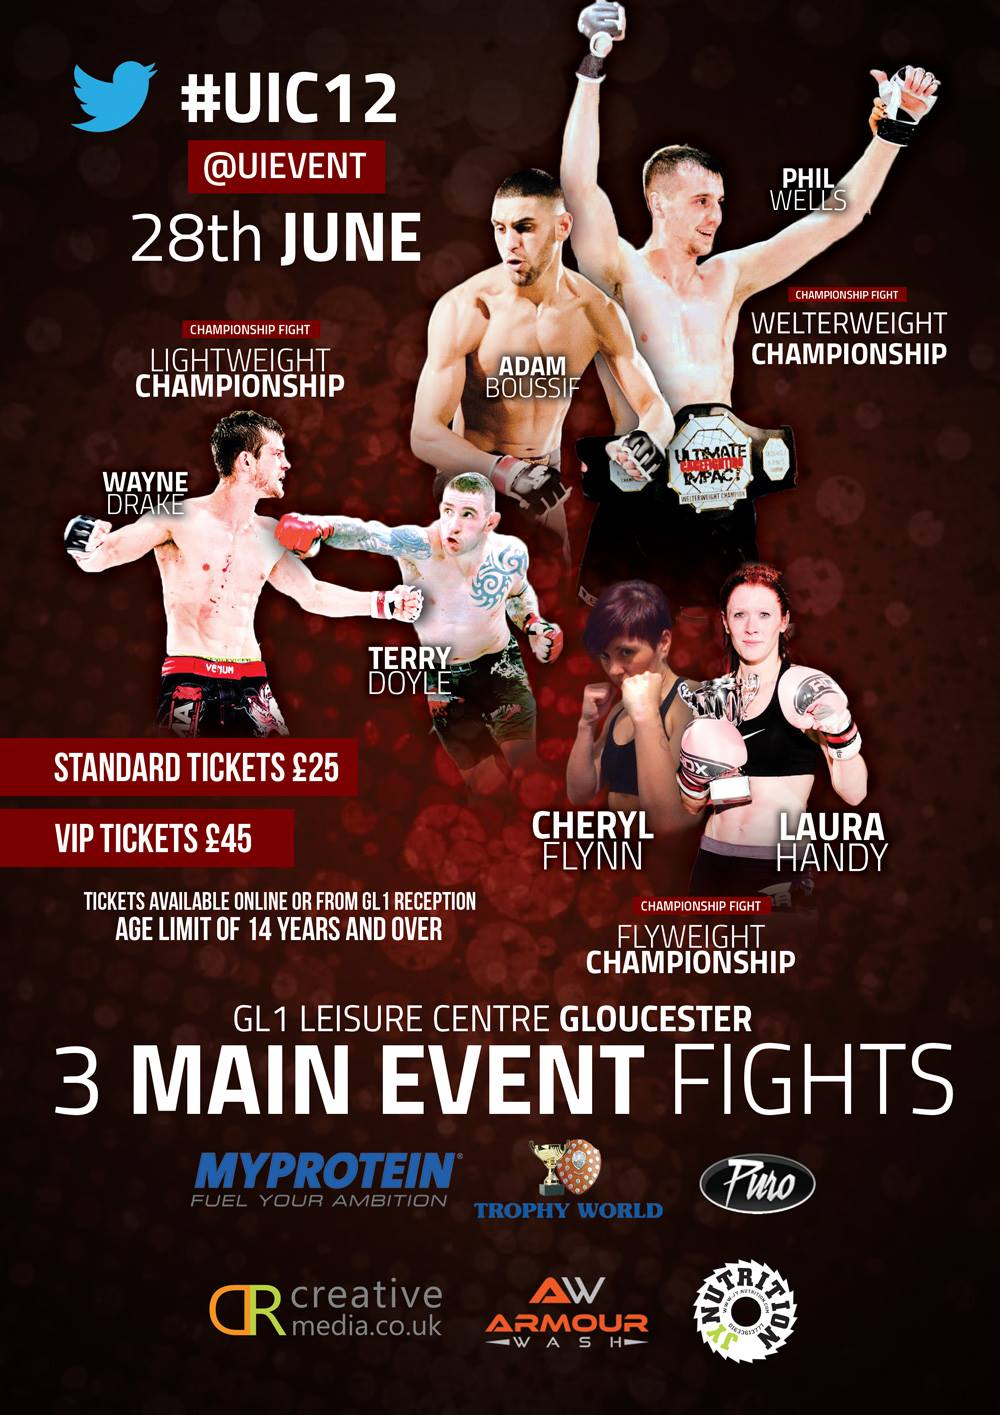 ULTIMATE IMPACT 12 FIGHT CARD DETAILS